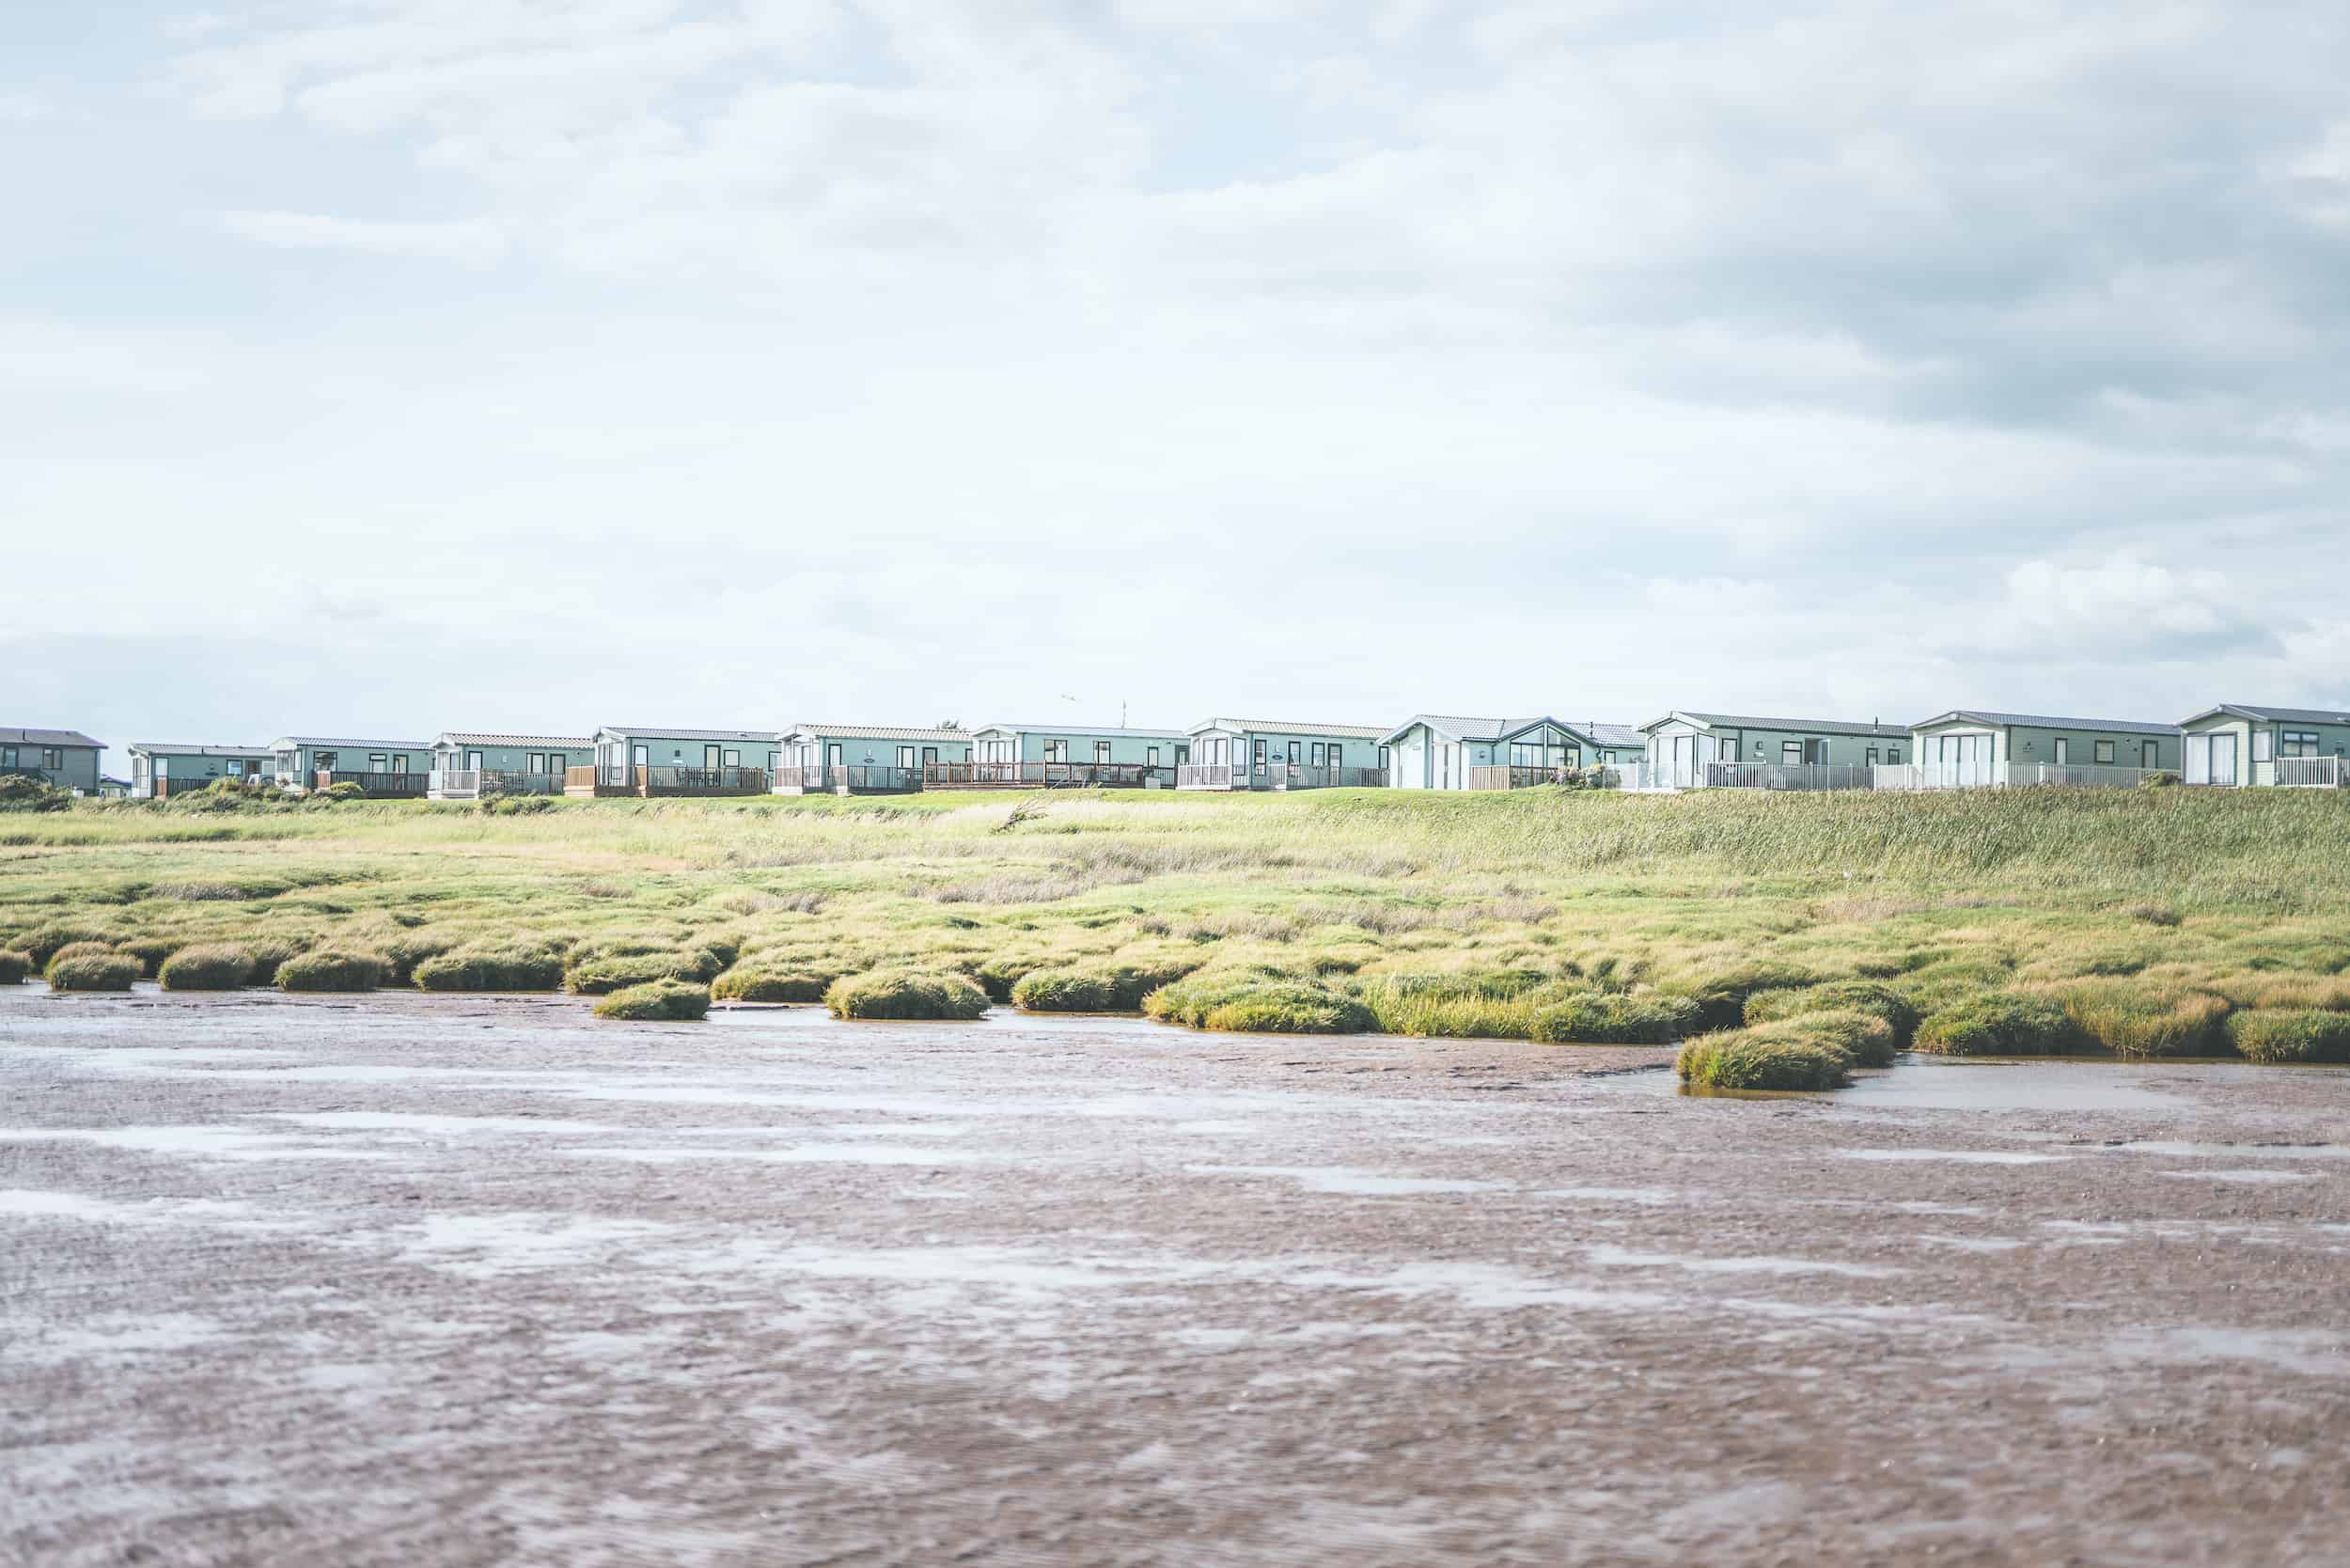 Queensberry Bay caravans overlooking the beach